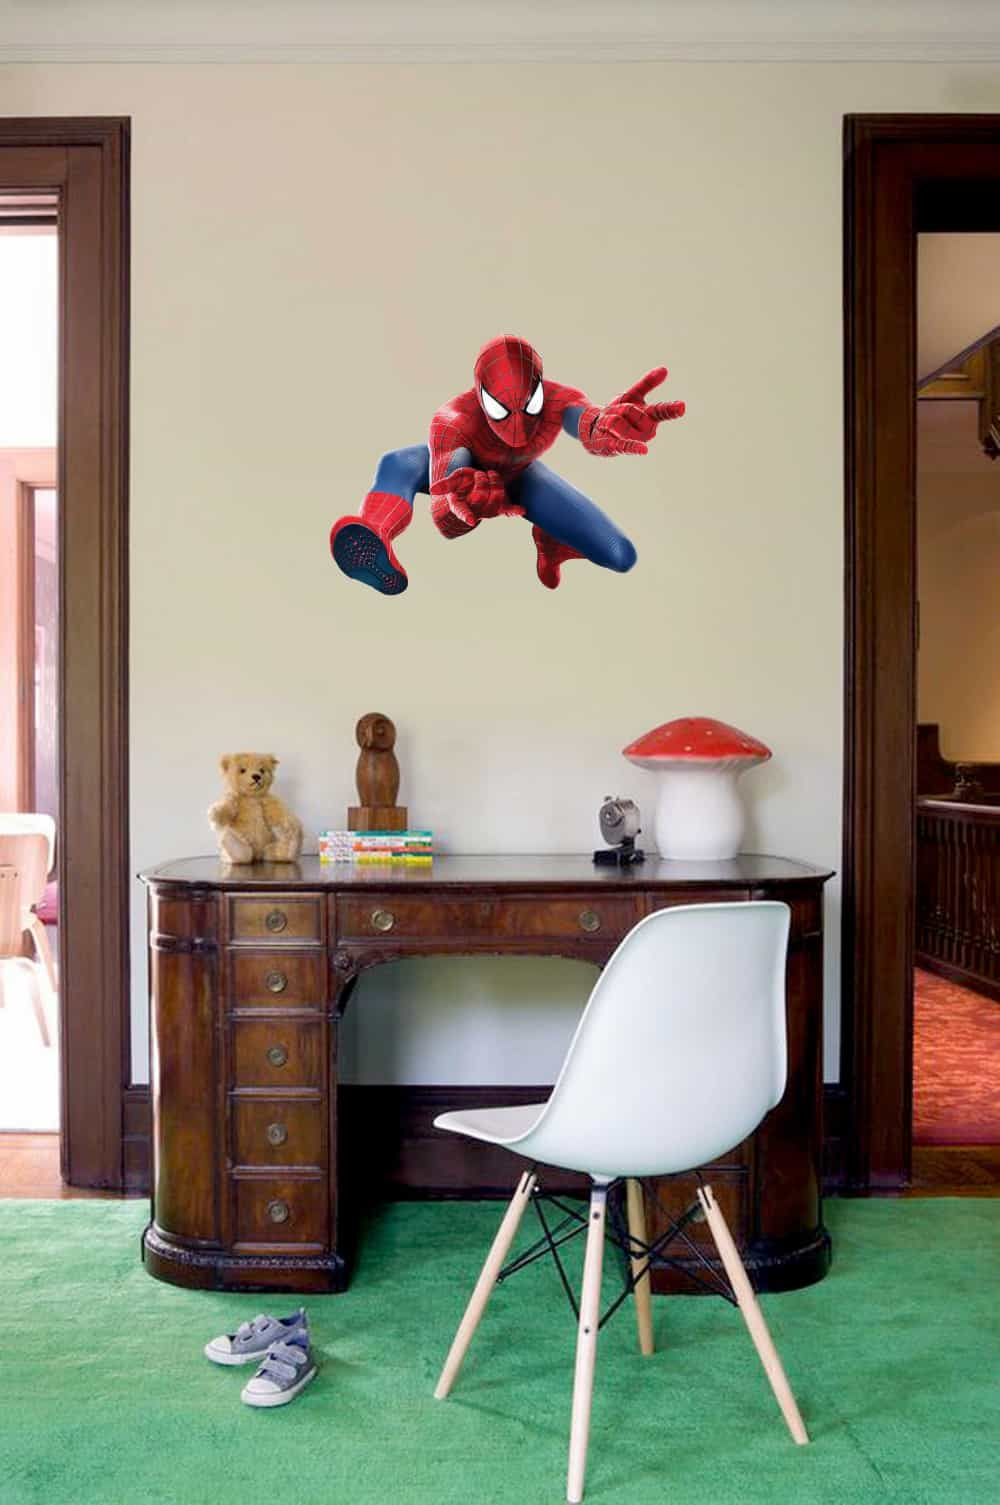 Spiderman Living room decal